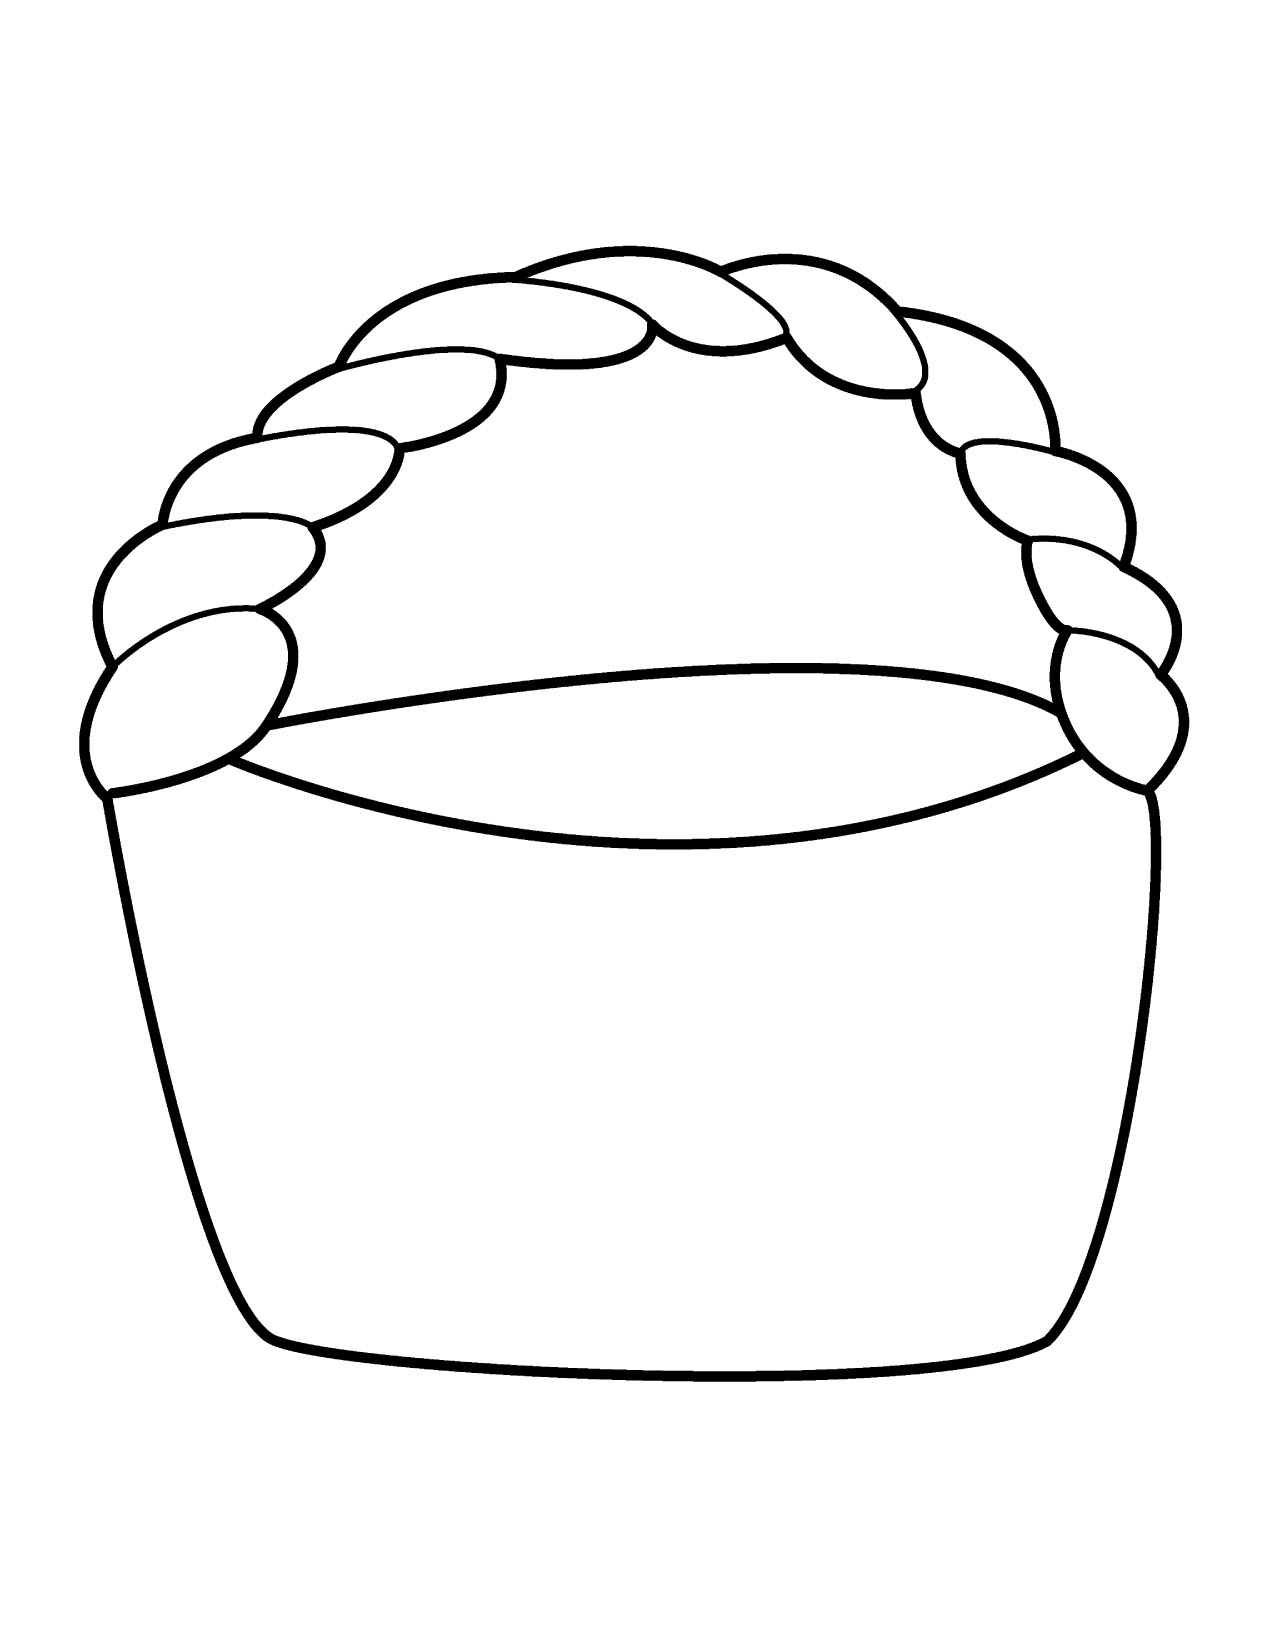 Picnic Basket clipart outline Memory%20clipart Panda Free gift Clipart